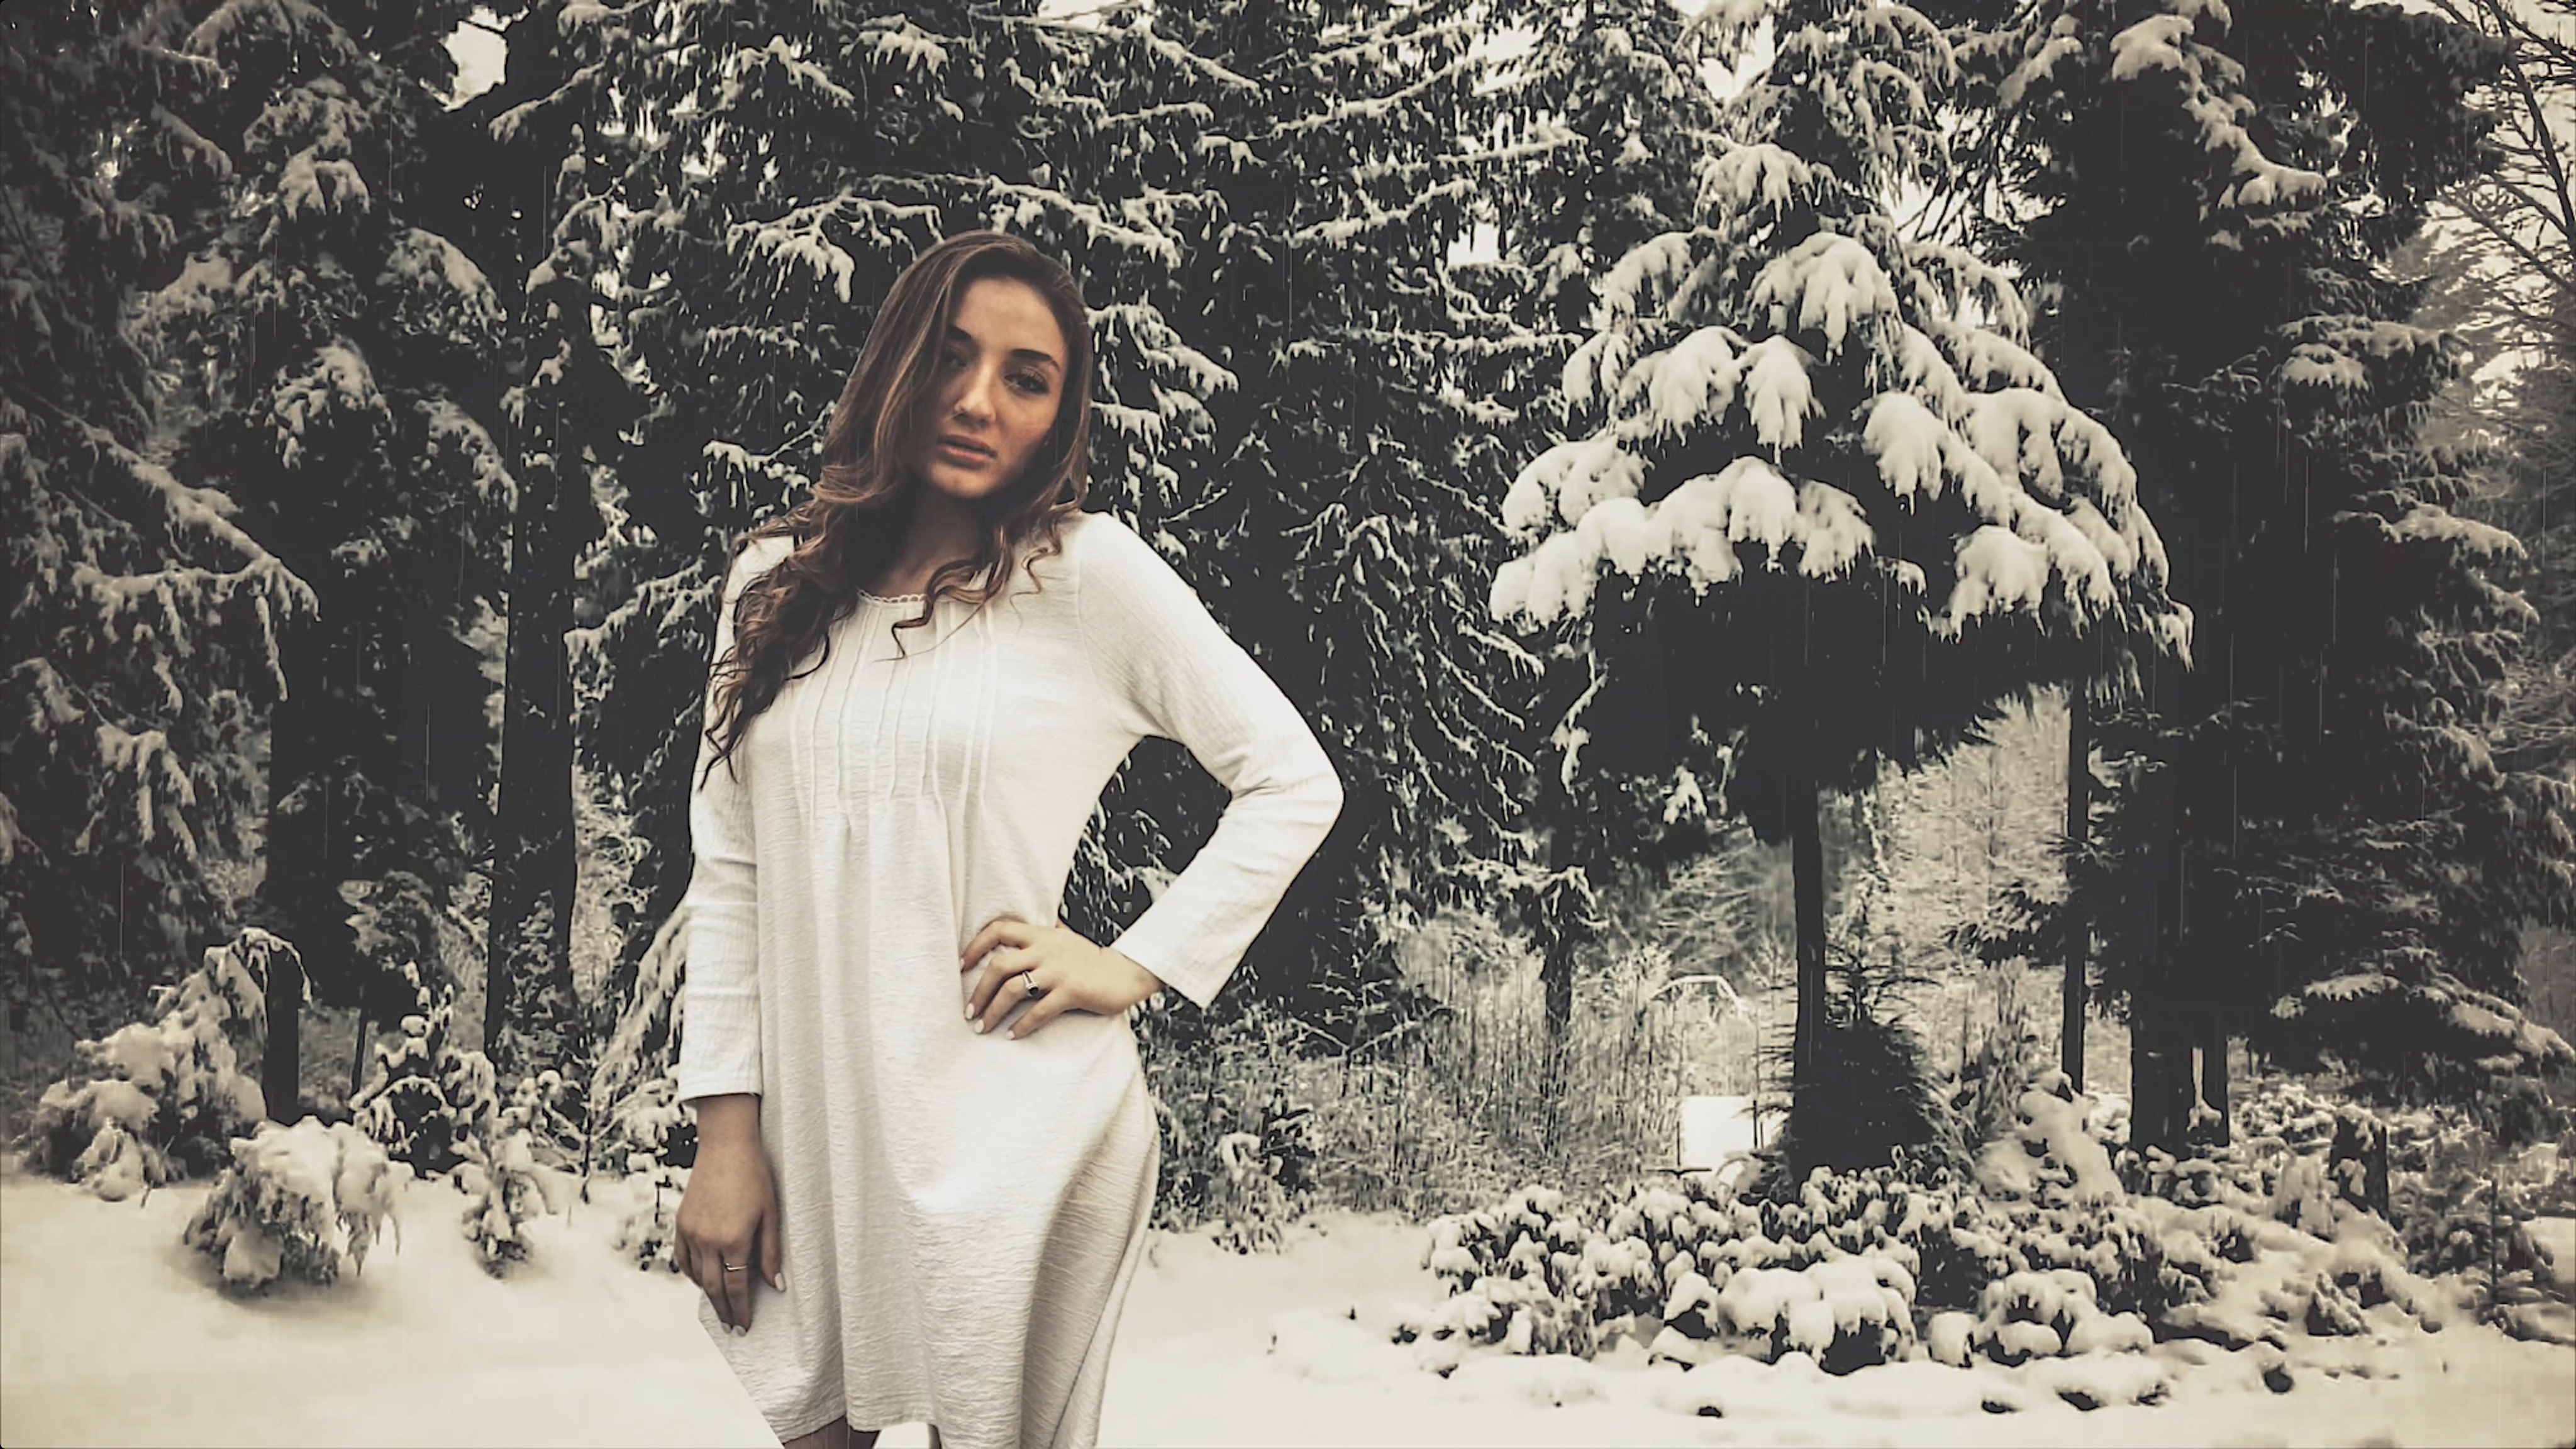 White Dress In Snow